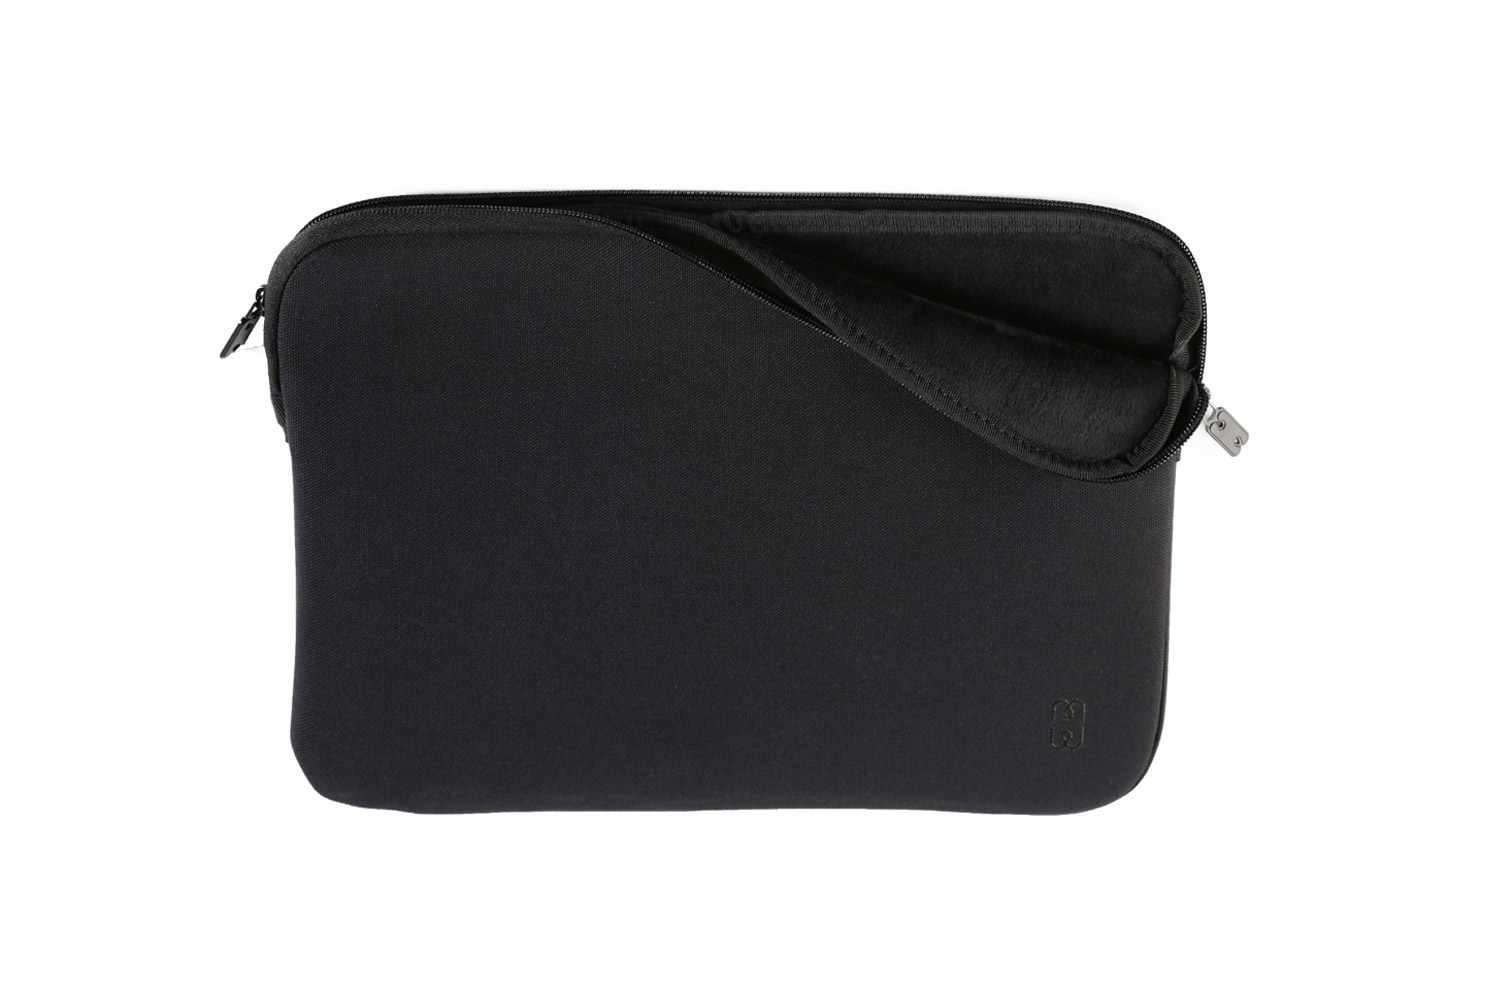 Black sleeve for macbook pro 15 late 2016 2 mw for Housse macbook 12